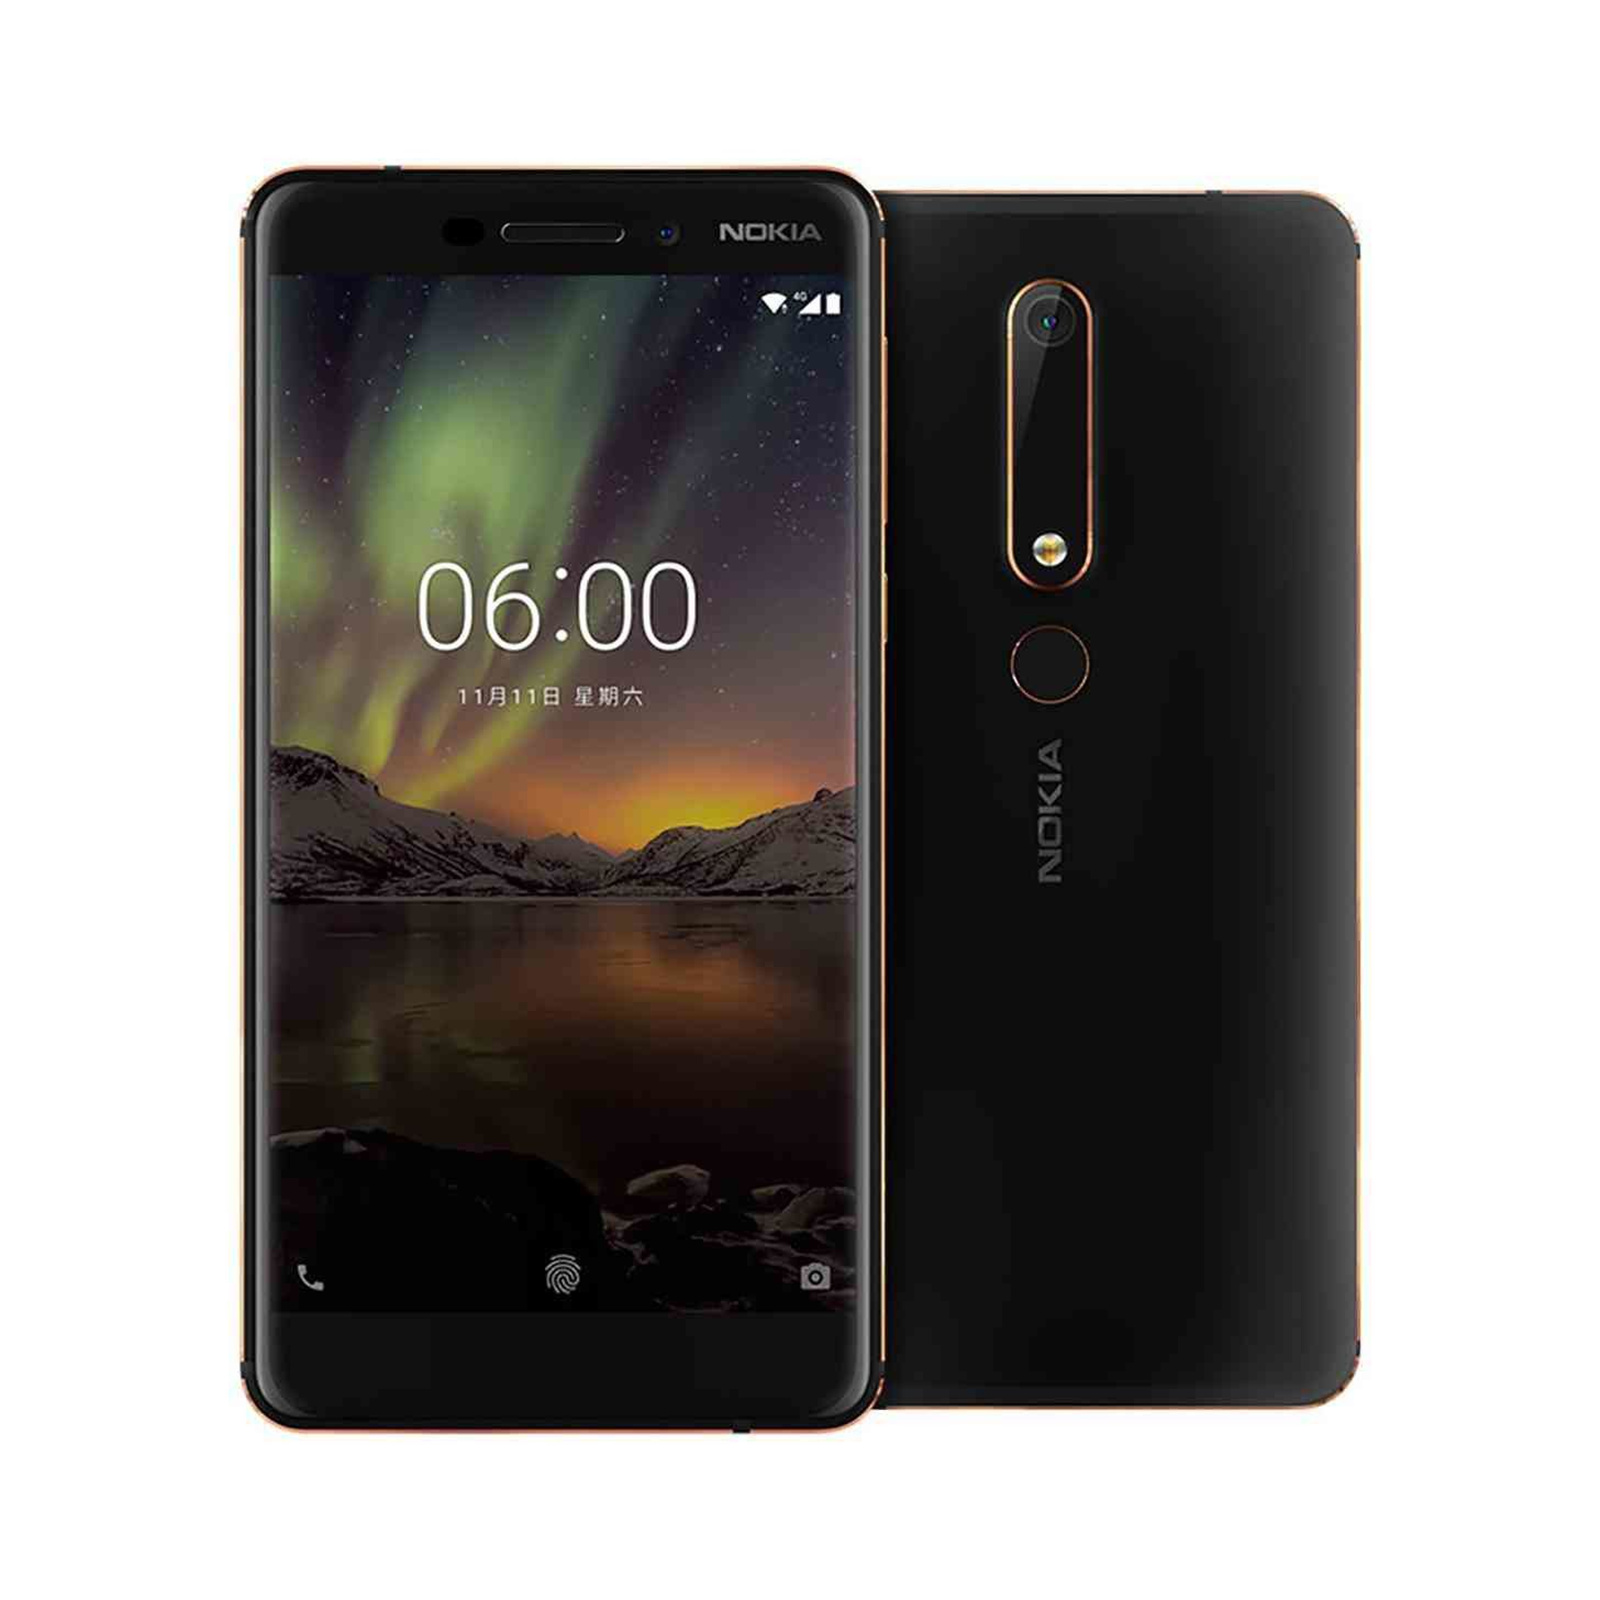 c0dcf656d Nokia 6.1 (2018) 32GB Smartphone - Black - with pure Android One software